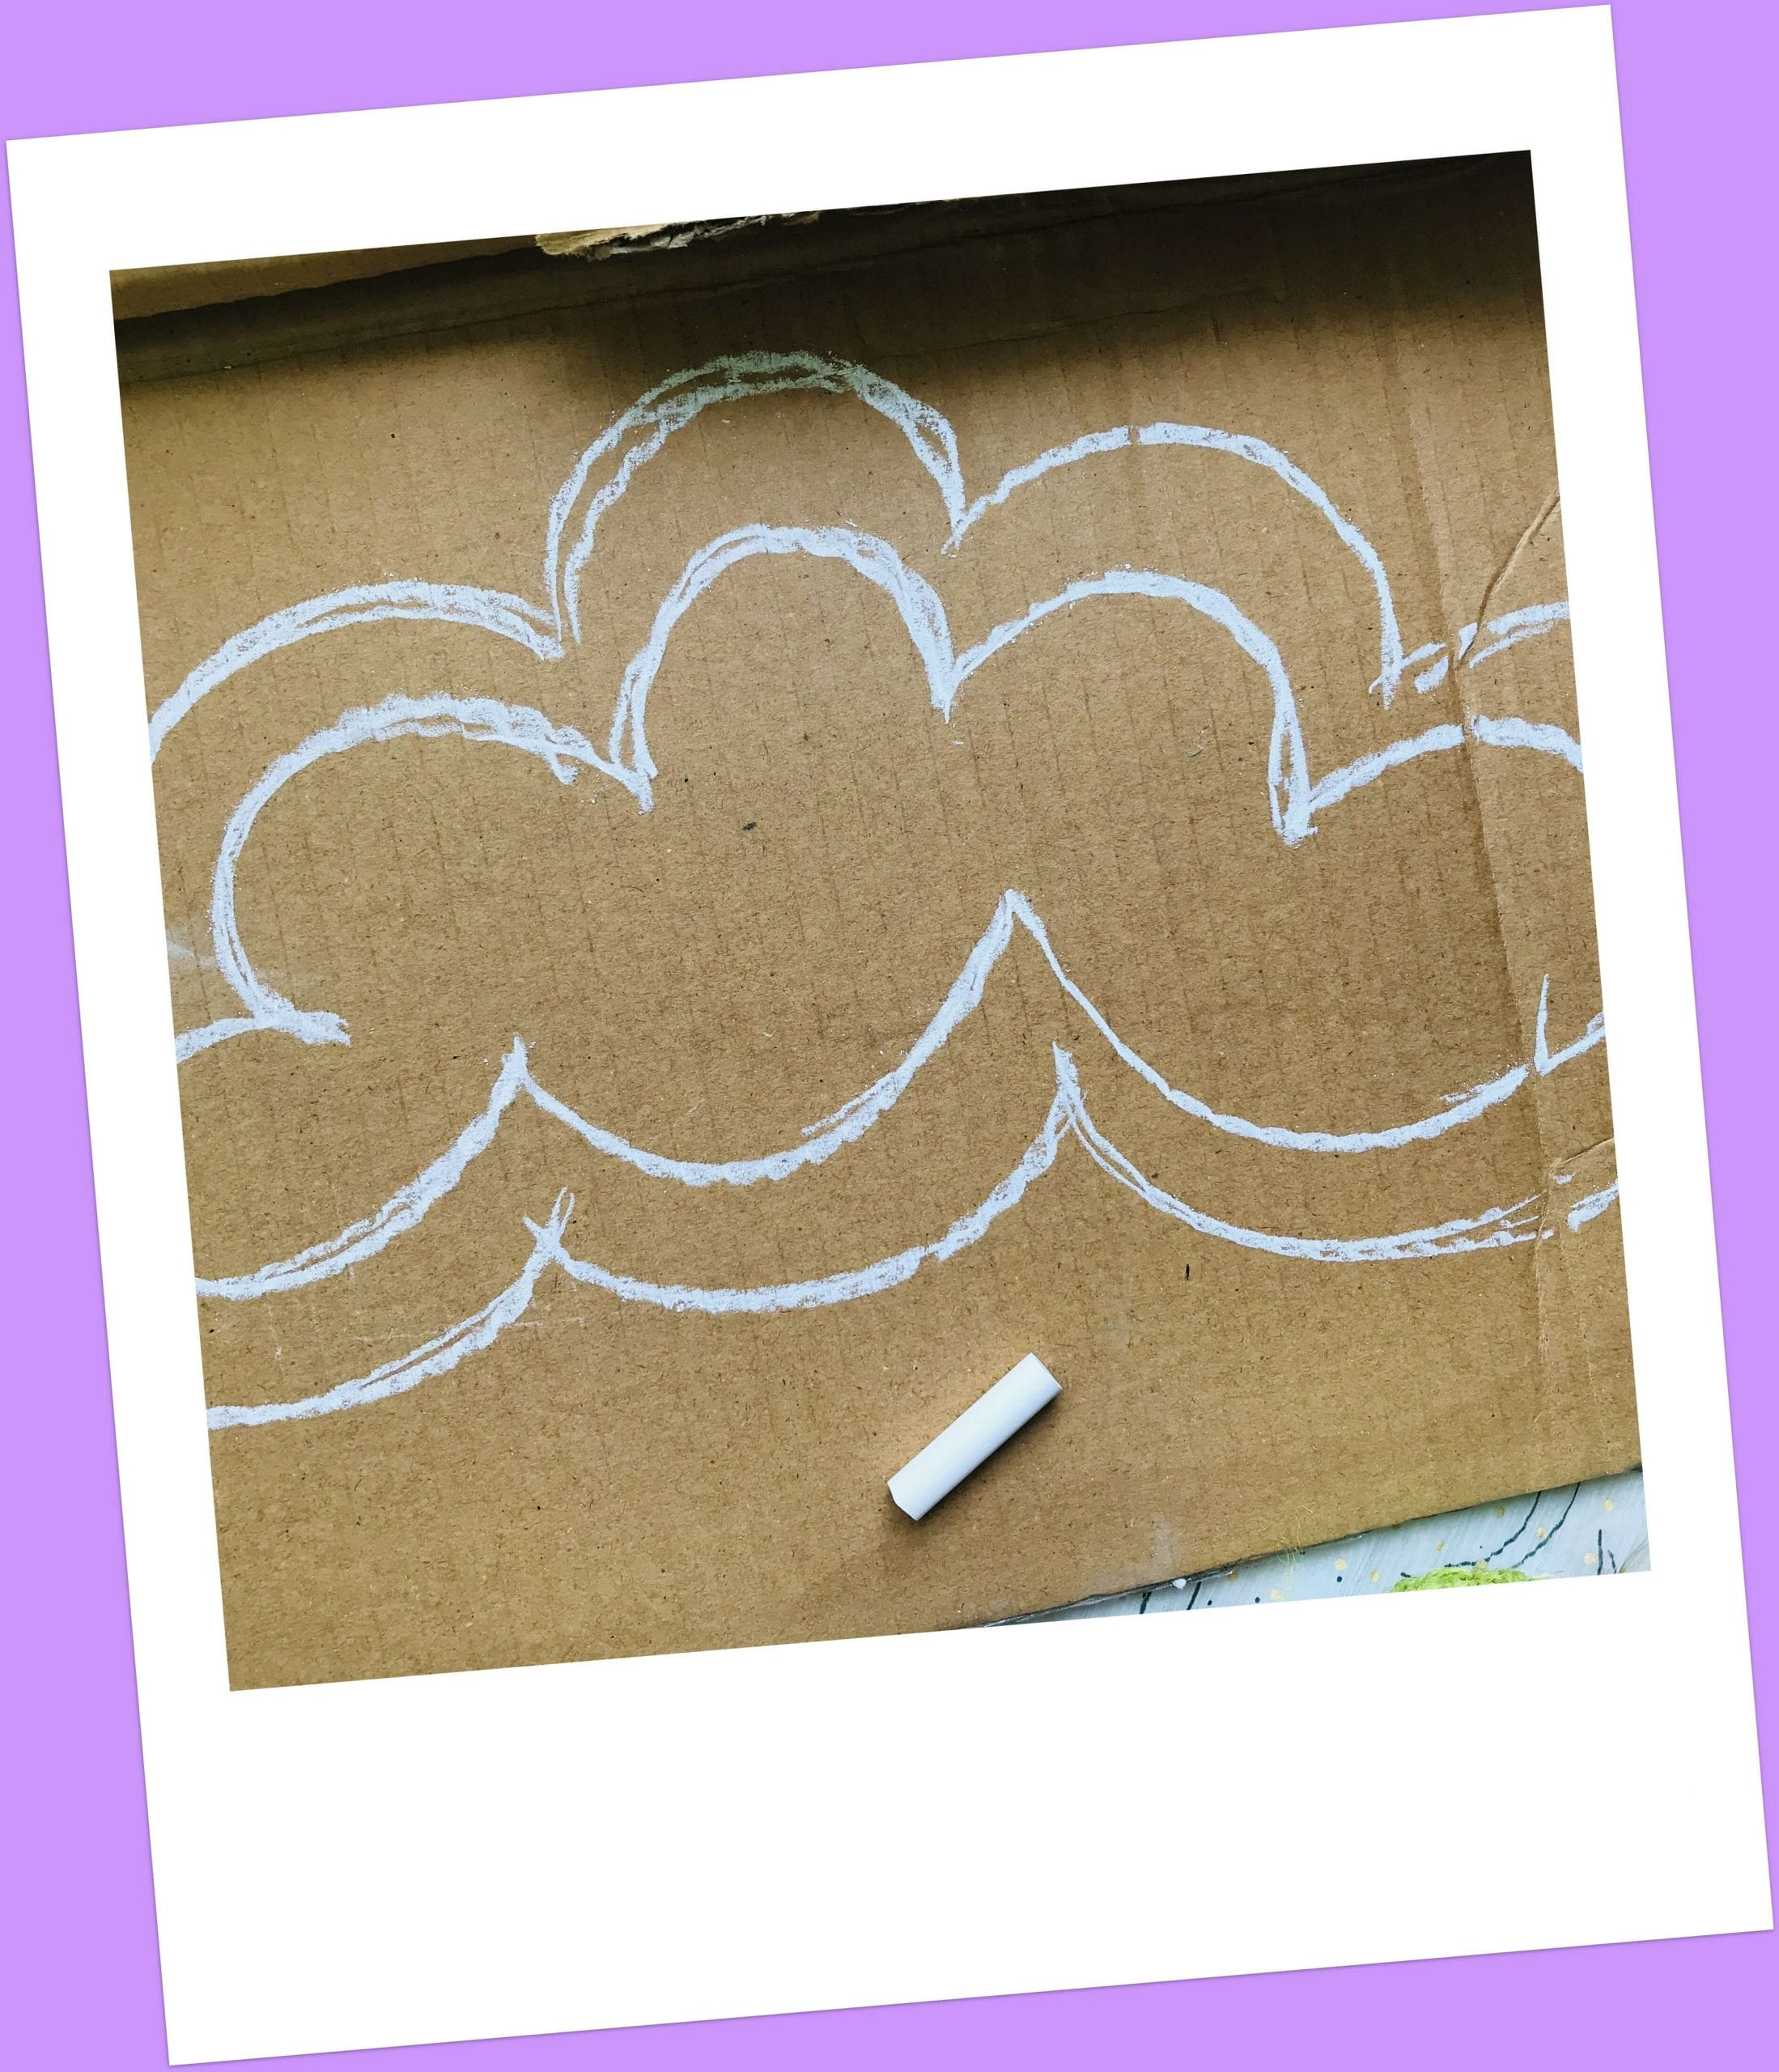 draw the shape on cardboard